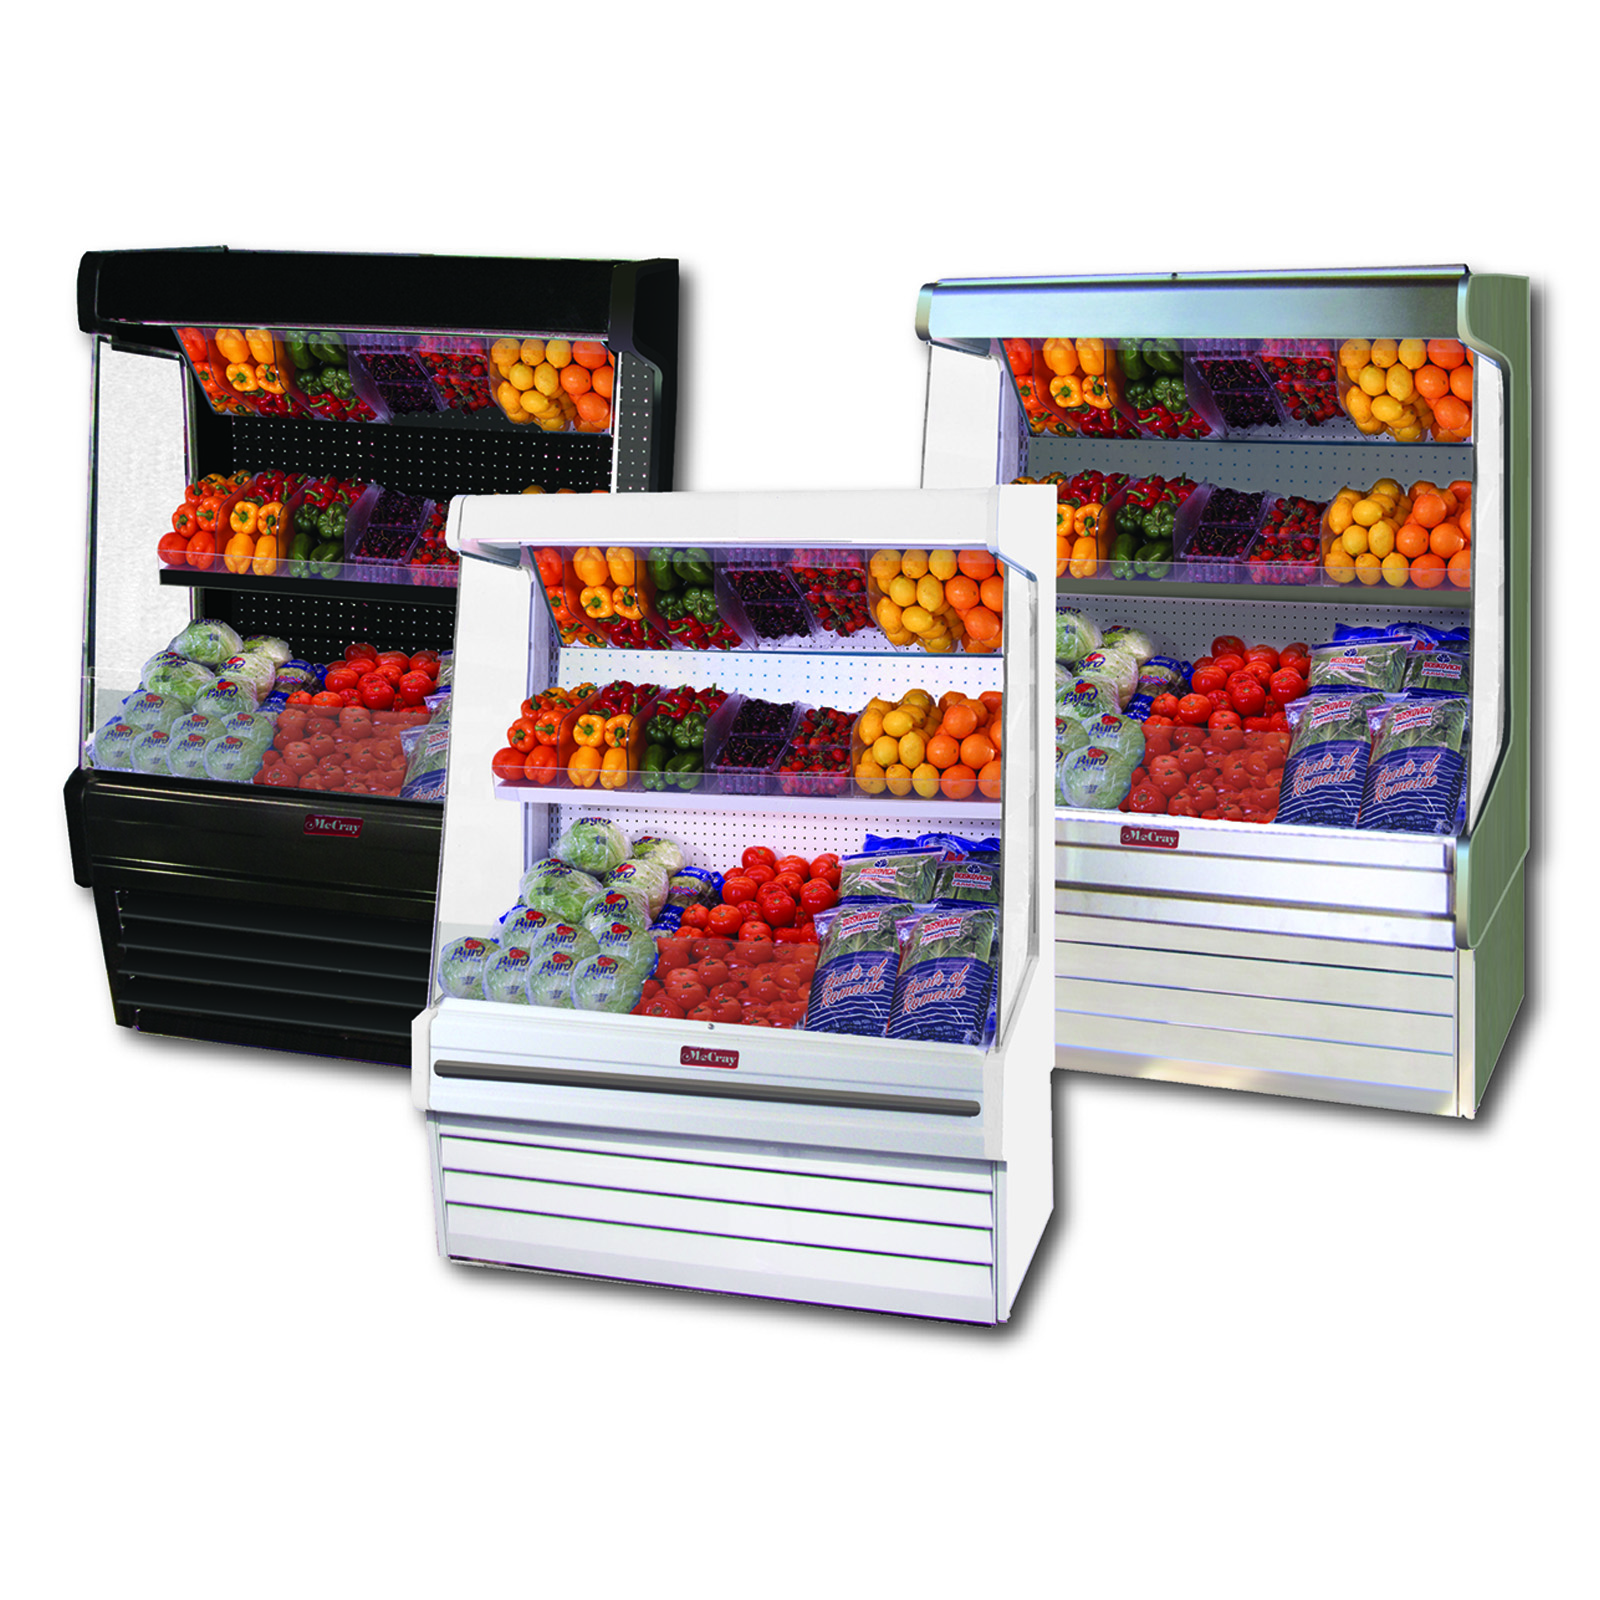 Howard-McCray R-OP30E-4-S-LED display case, produce